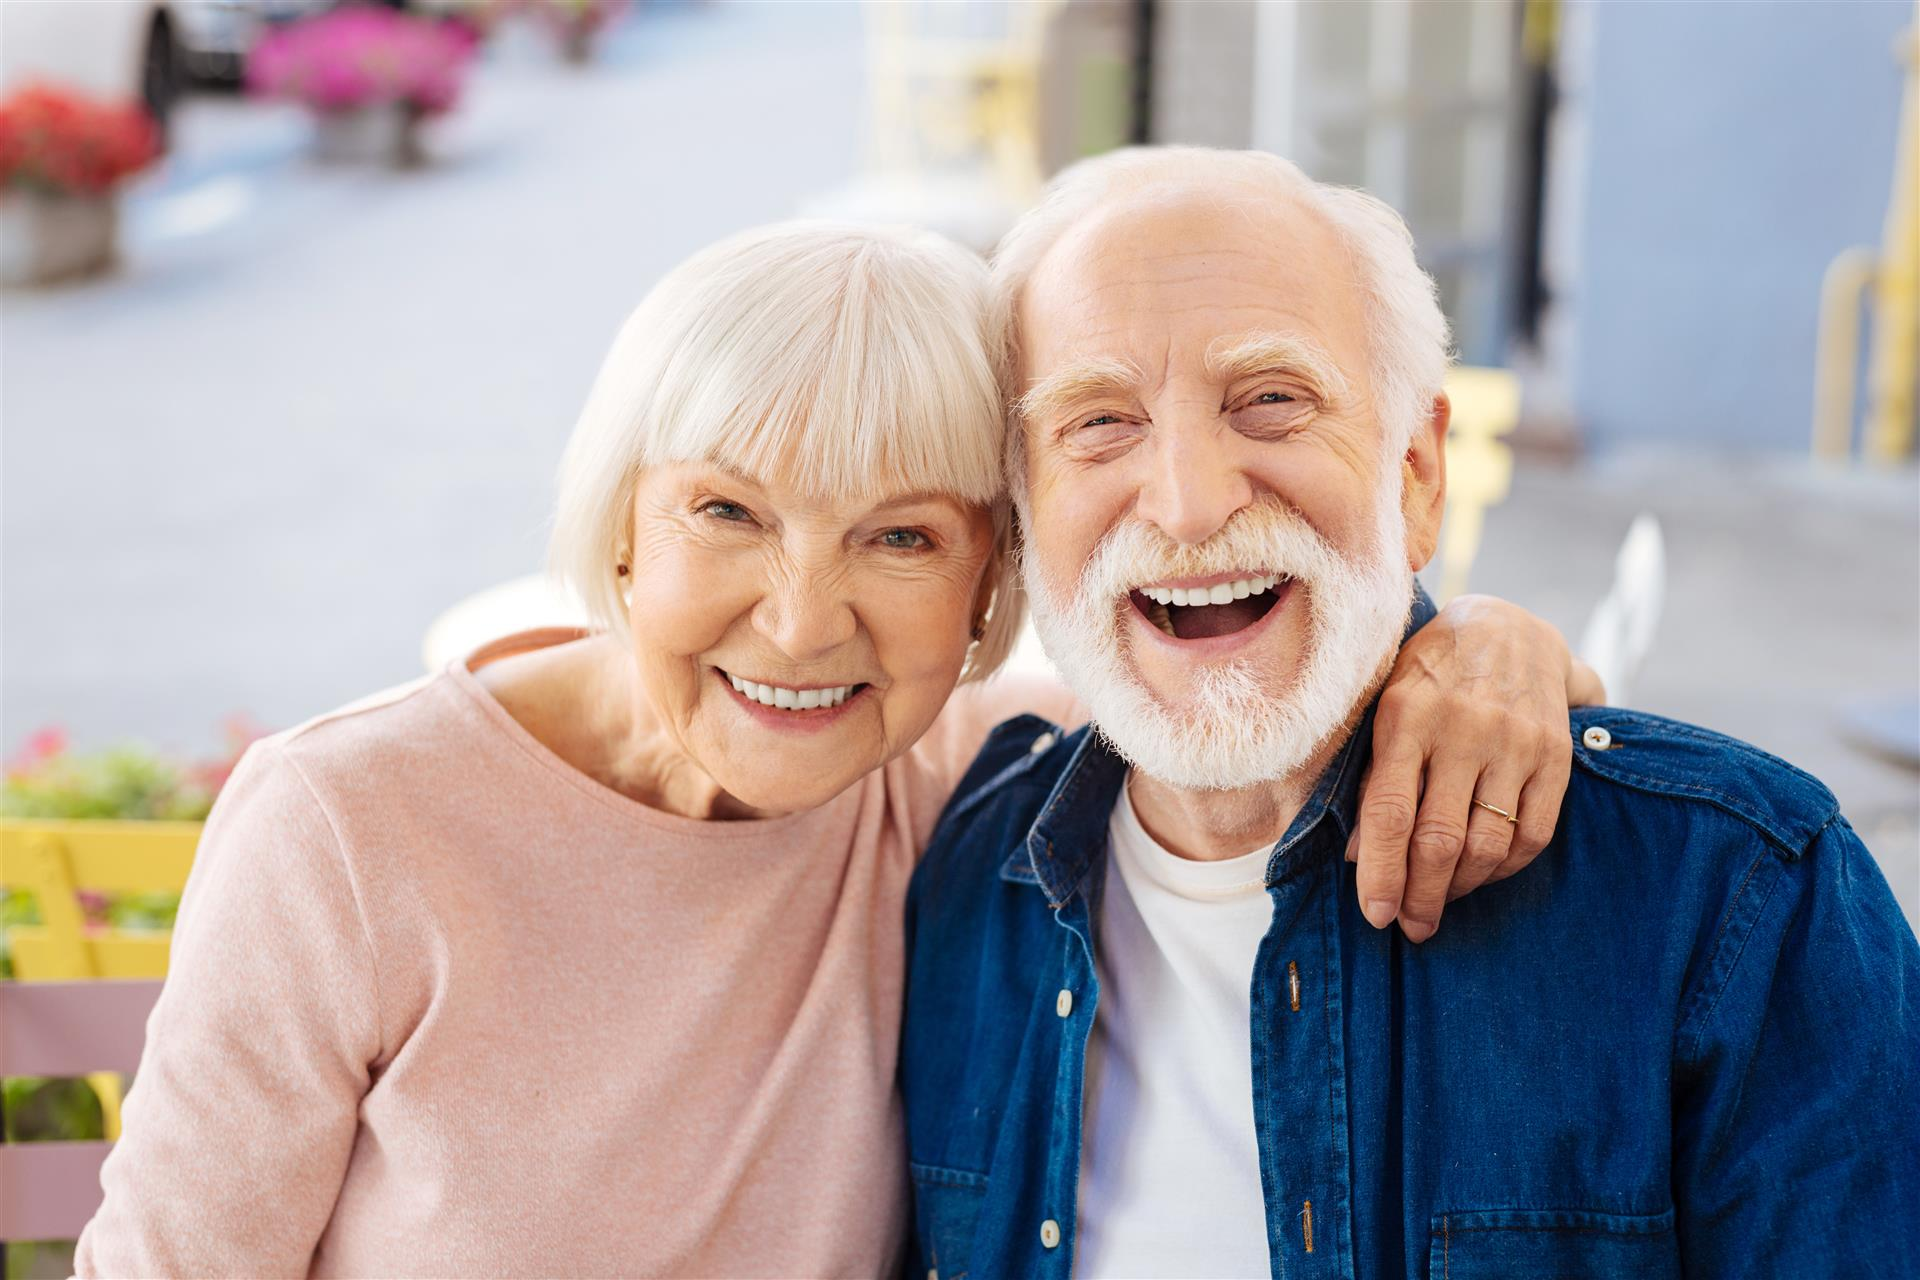 5 Tips For Dating In Your Golden Years